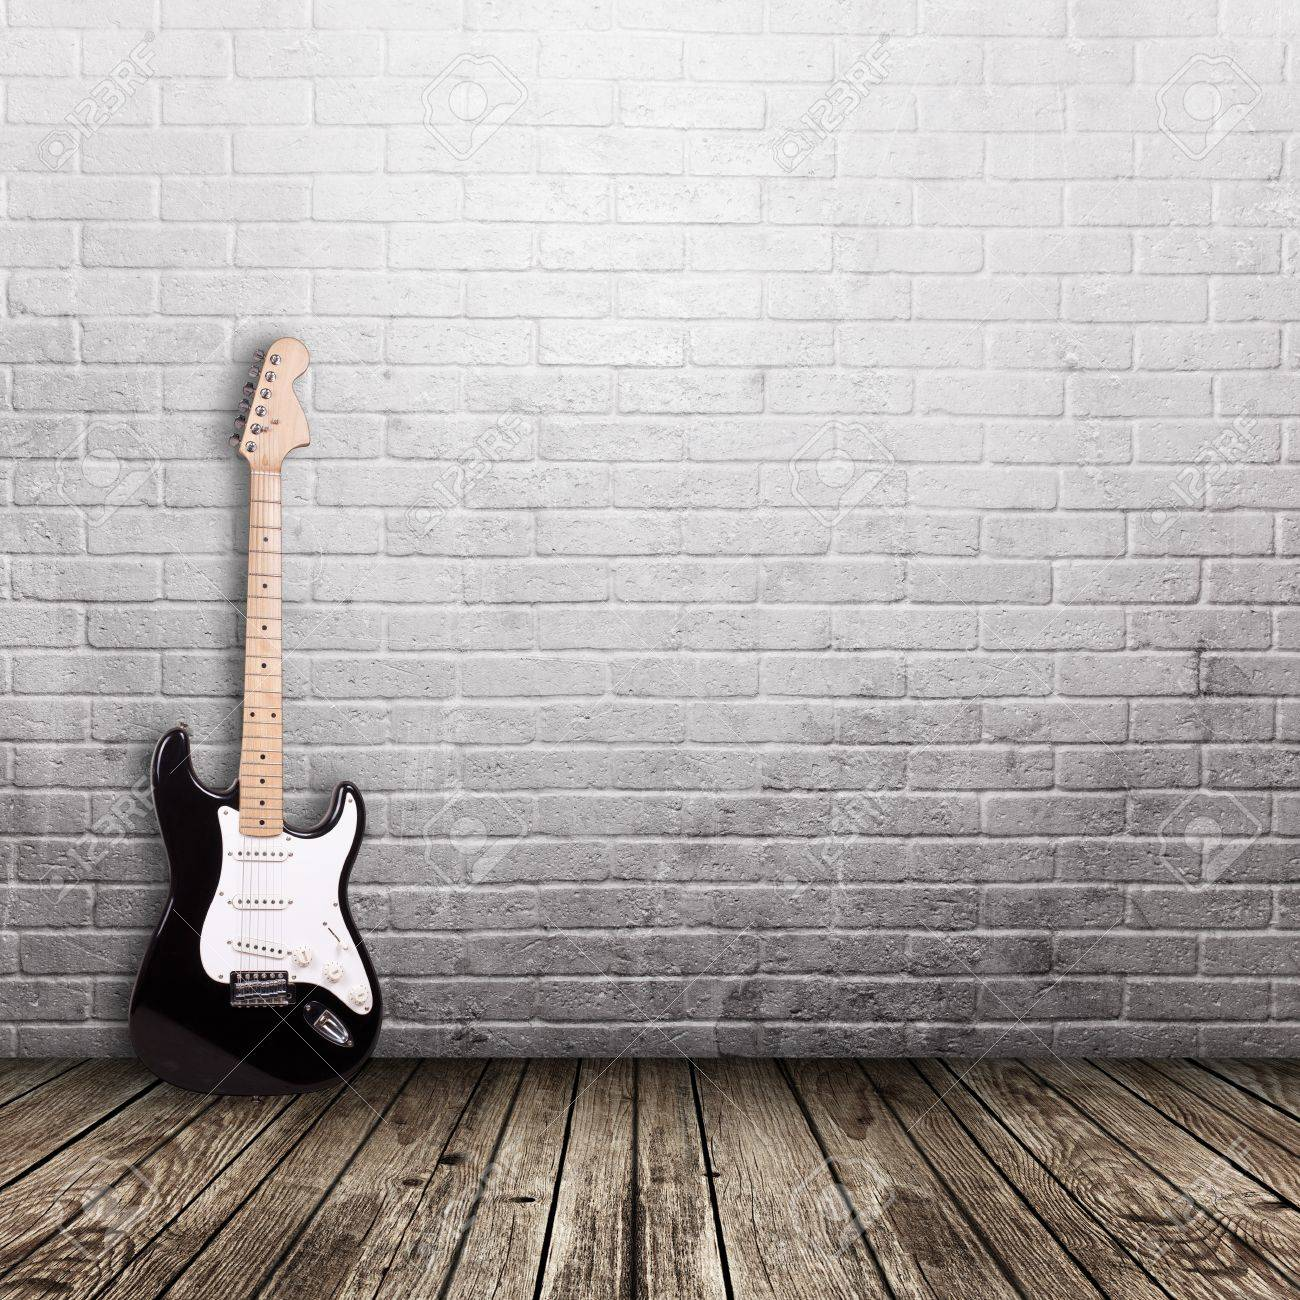 Electric Guitar In The Room With Brick Wall Background Stock Photo Picture And Royalty Free Image Image 47347834